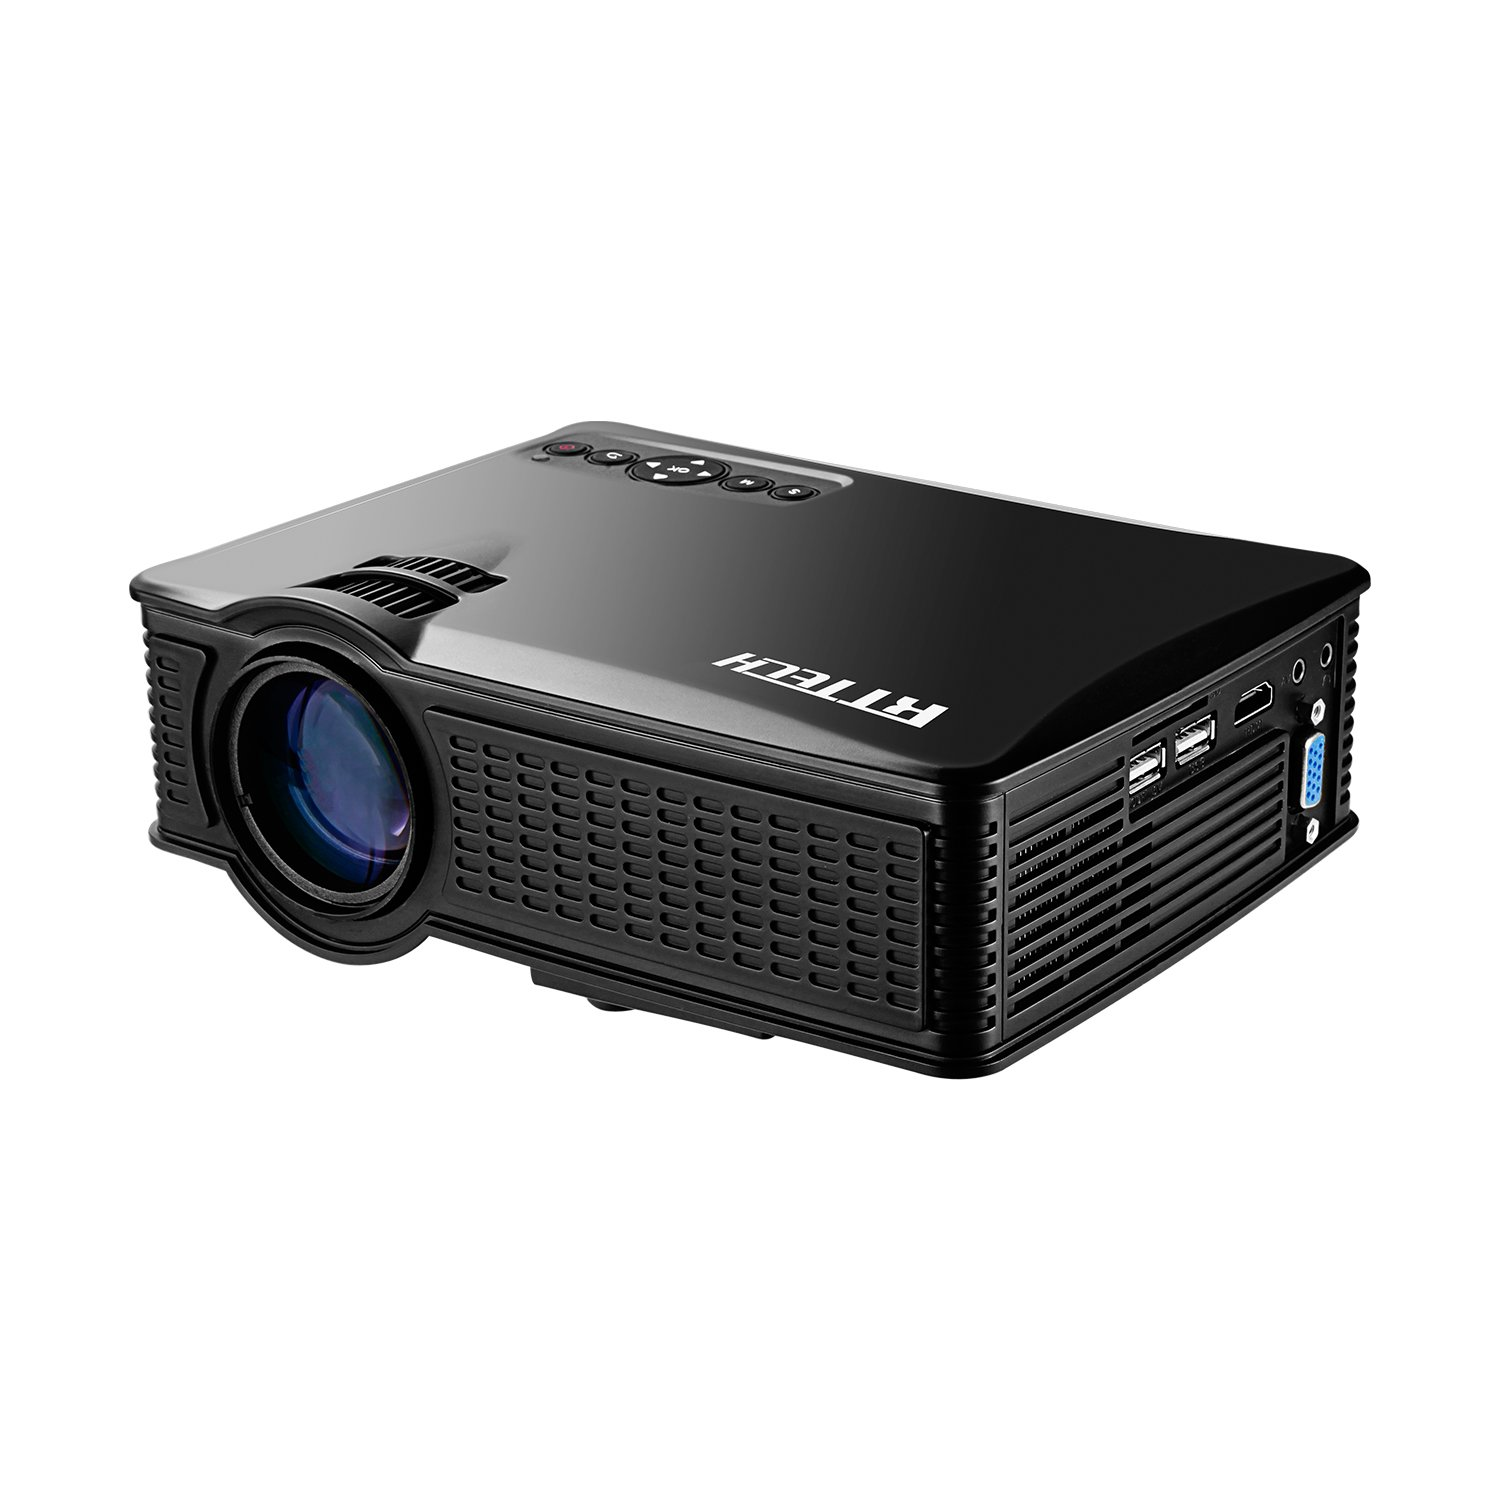 Portable Mini HD Projector 1080p, 1500 Lumens LED Video Projector For Home Theater Movies, Connects To Android Smartphone , Tablet, or PC Via HDMI, AV, VGA, USB and SD by RtTech